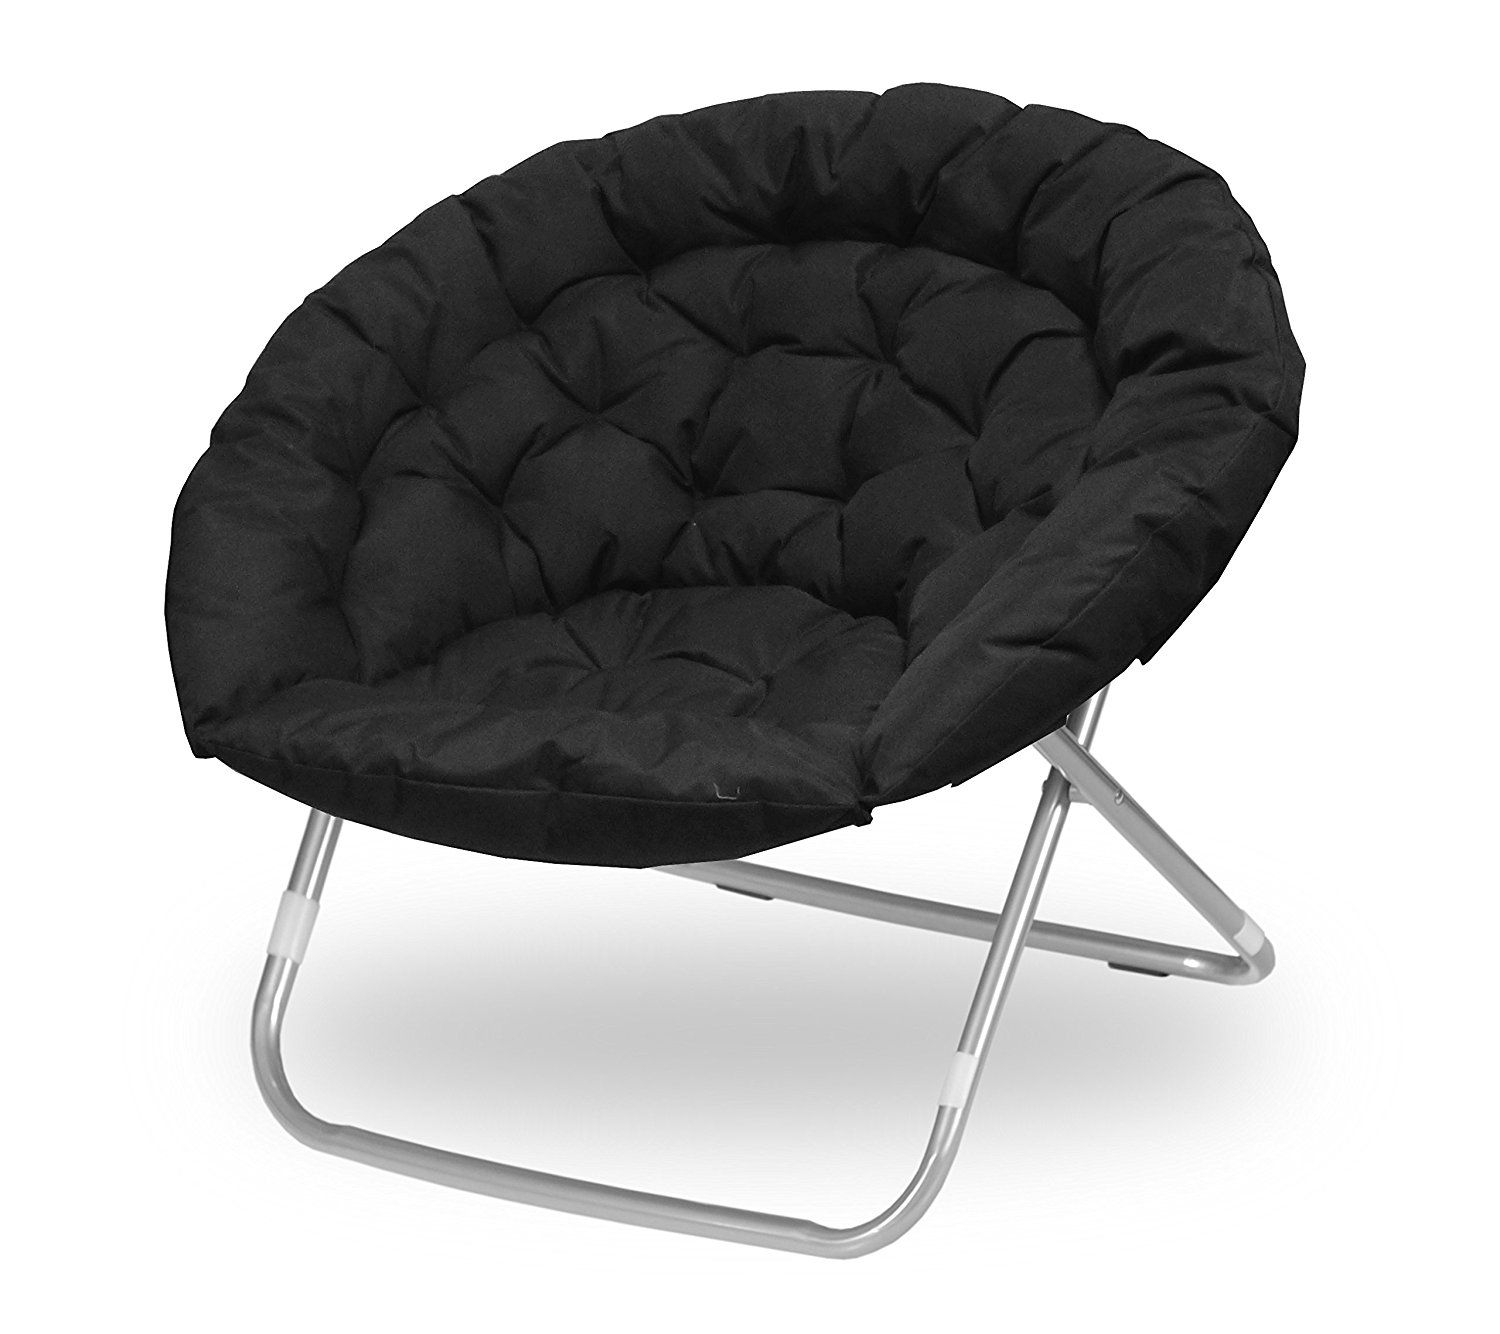 37 Of The Best Chairs You Can Get On Amazon Moon chair